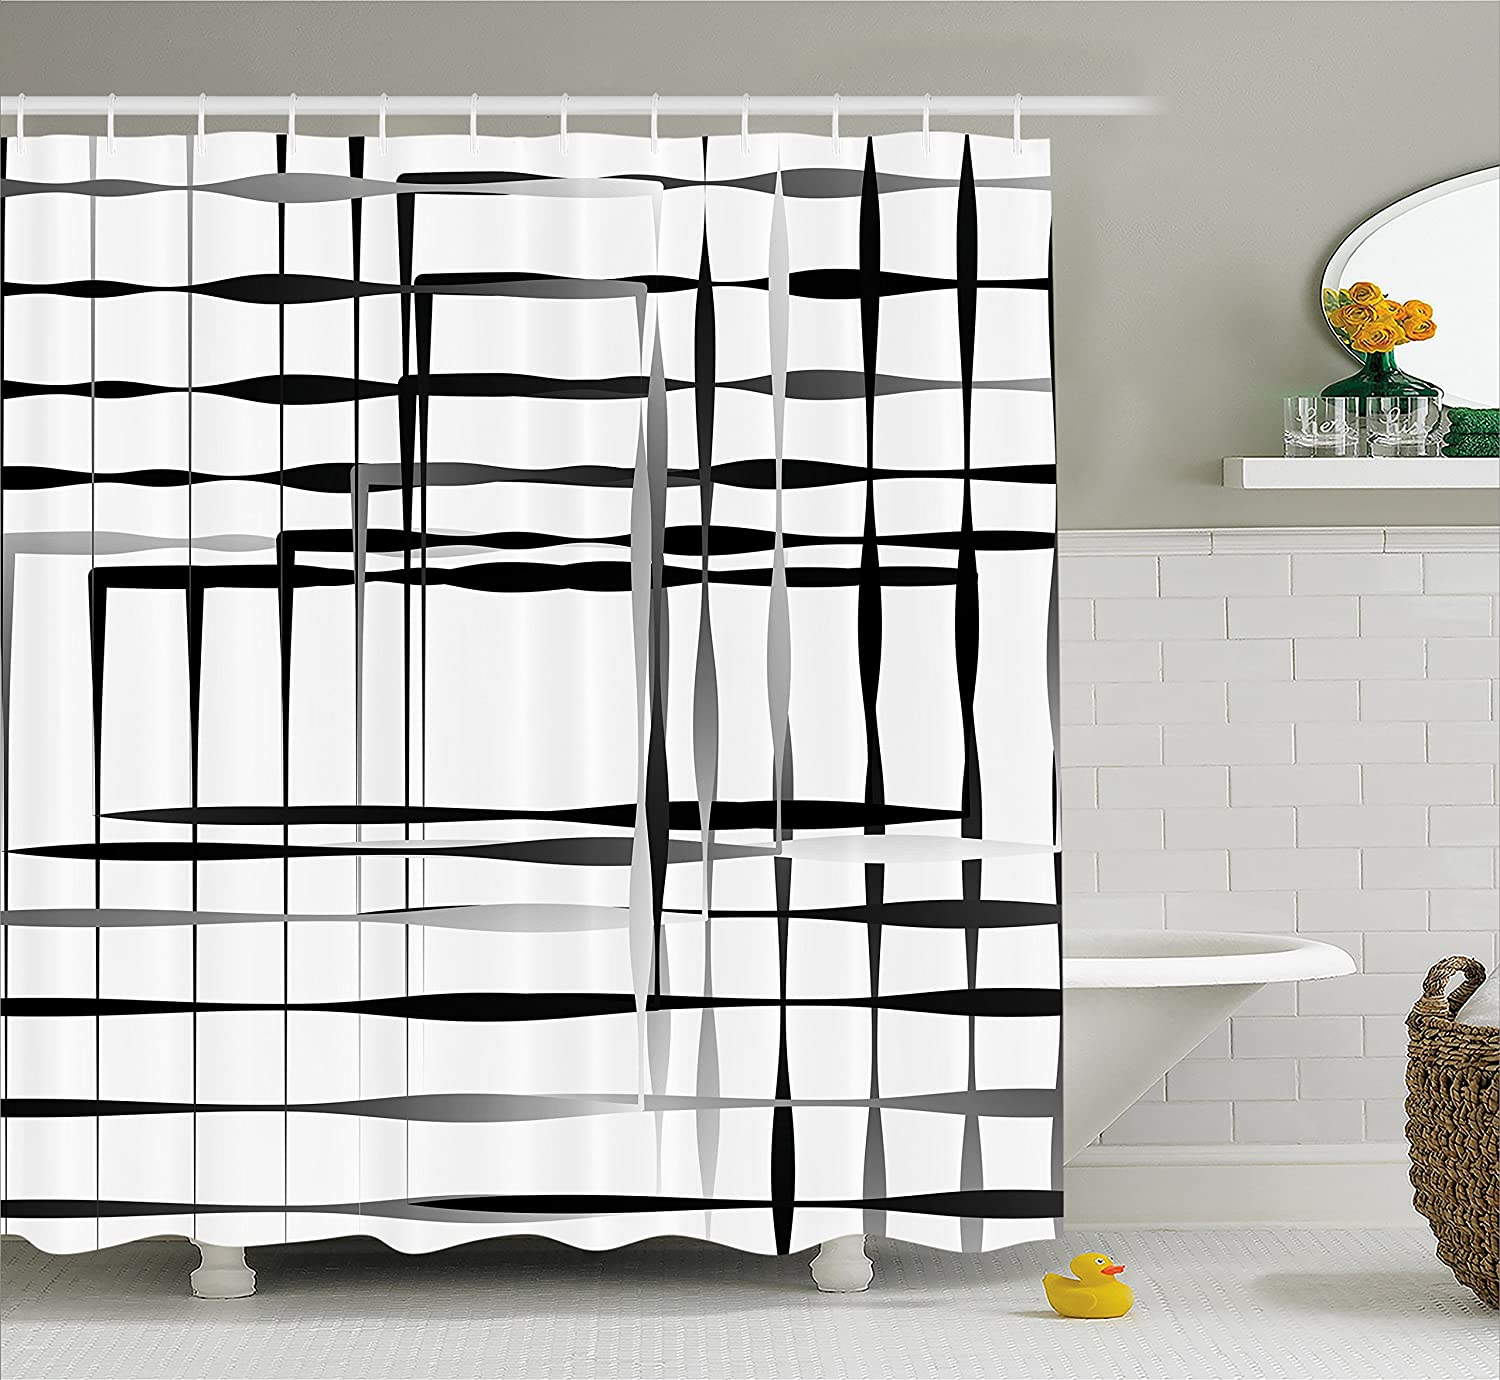 Ambesonne Modern Art Home Decor Shower Curtain, Minimalist Image with Simplistic Spaces and Spare Asymmetric Grids, Fabric Bathroom Decor Set with Hooks, 75 Inches Long, Black White